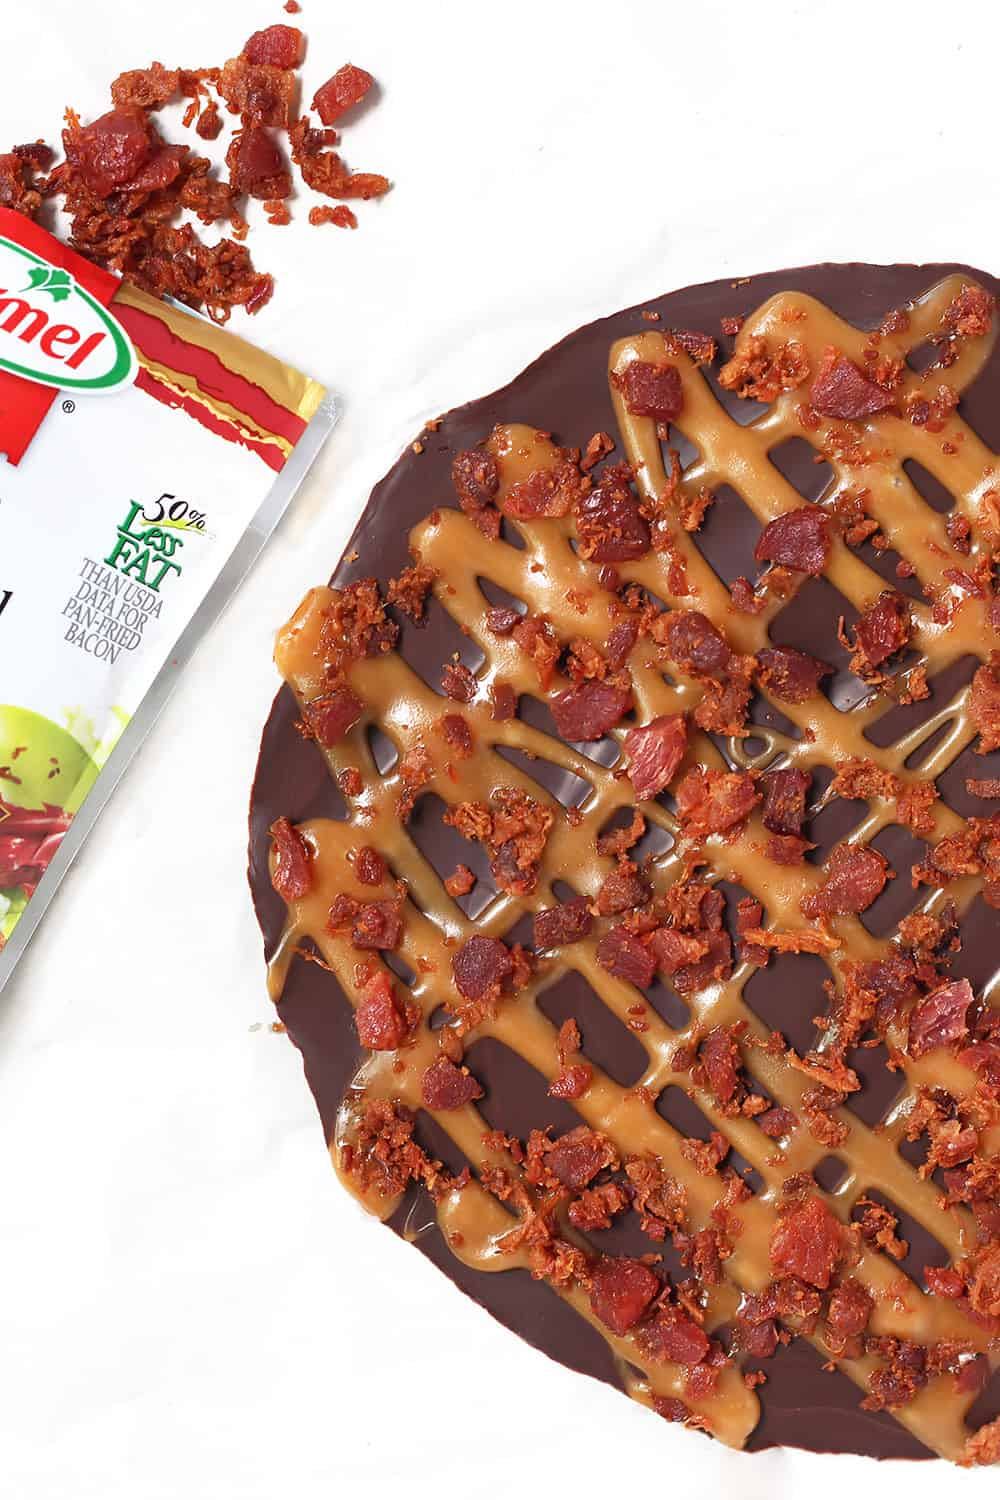 Made with Hormel bacon bits